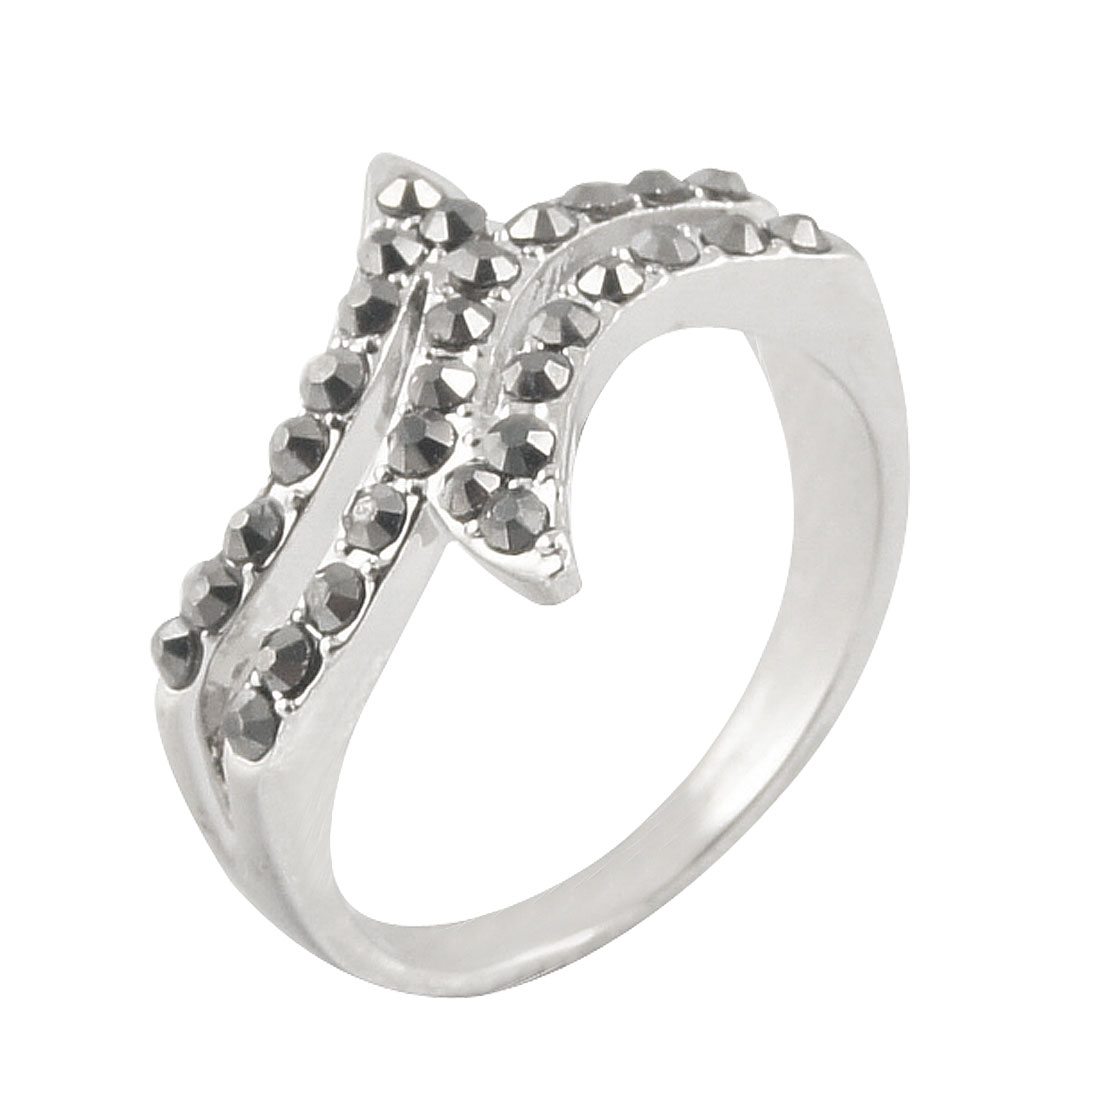 Gray Rhinestone Detail Silver Tone Finger Ring US 7 3/4 for Lady